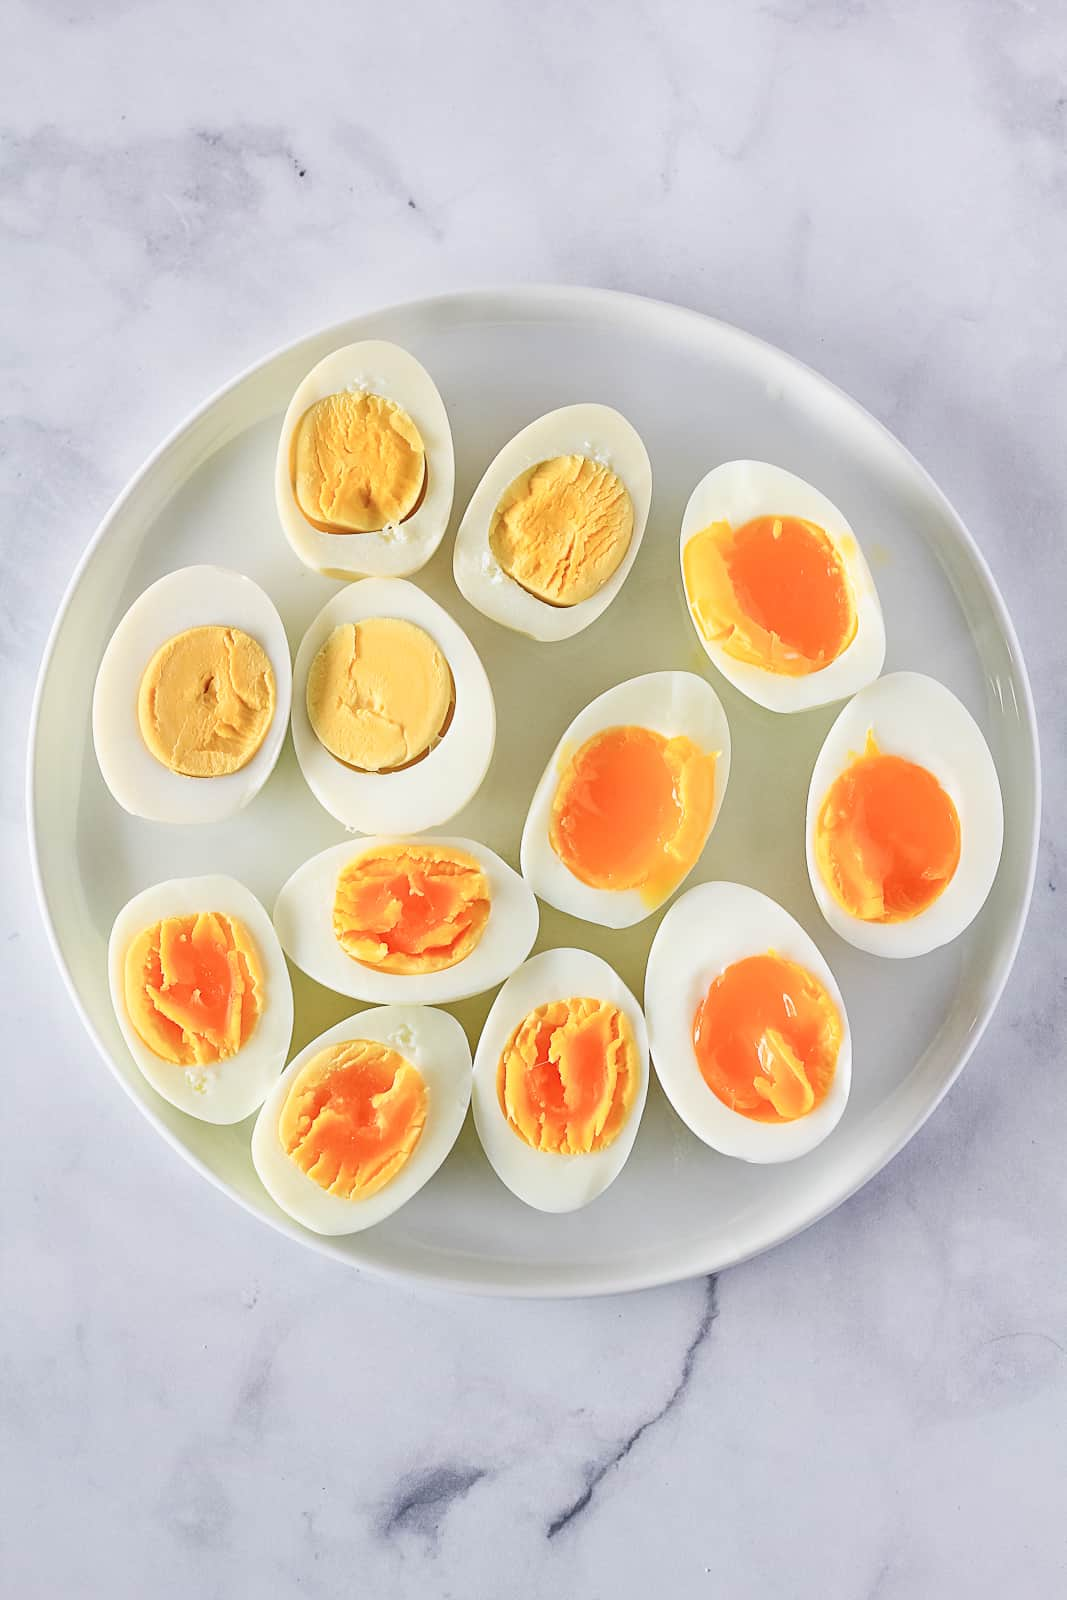 Three styles of Instant Pot Hard Boiled Eggs on a white plate including hard boiled, soft boiled and jammy / runny yolk.